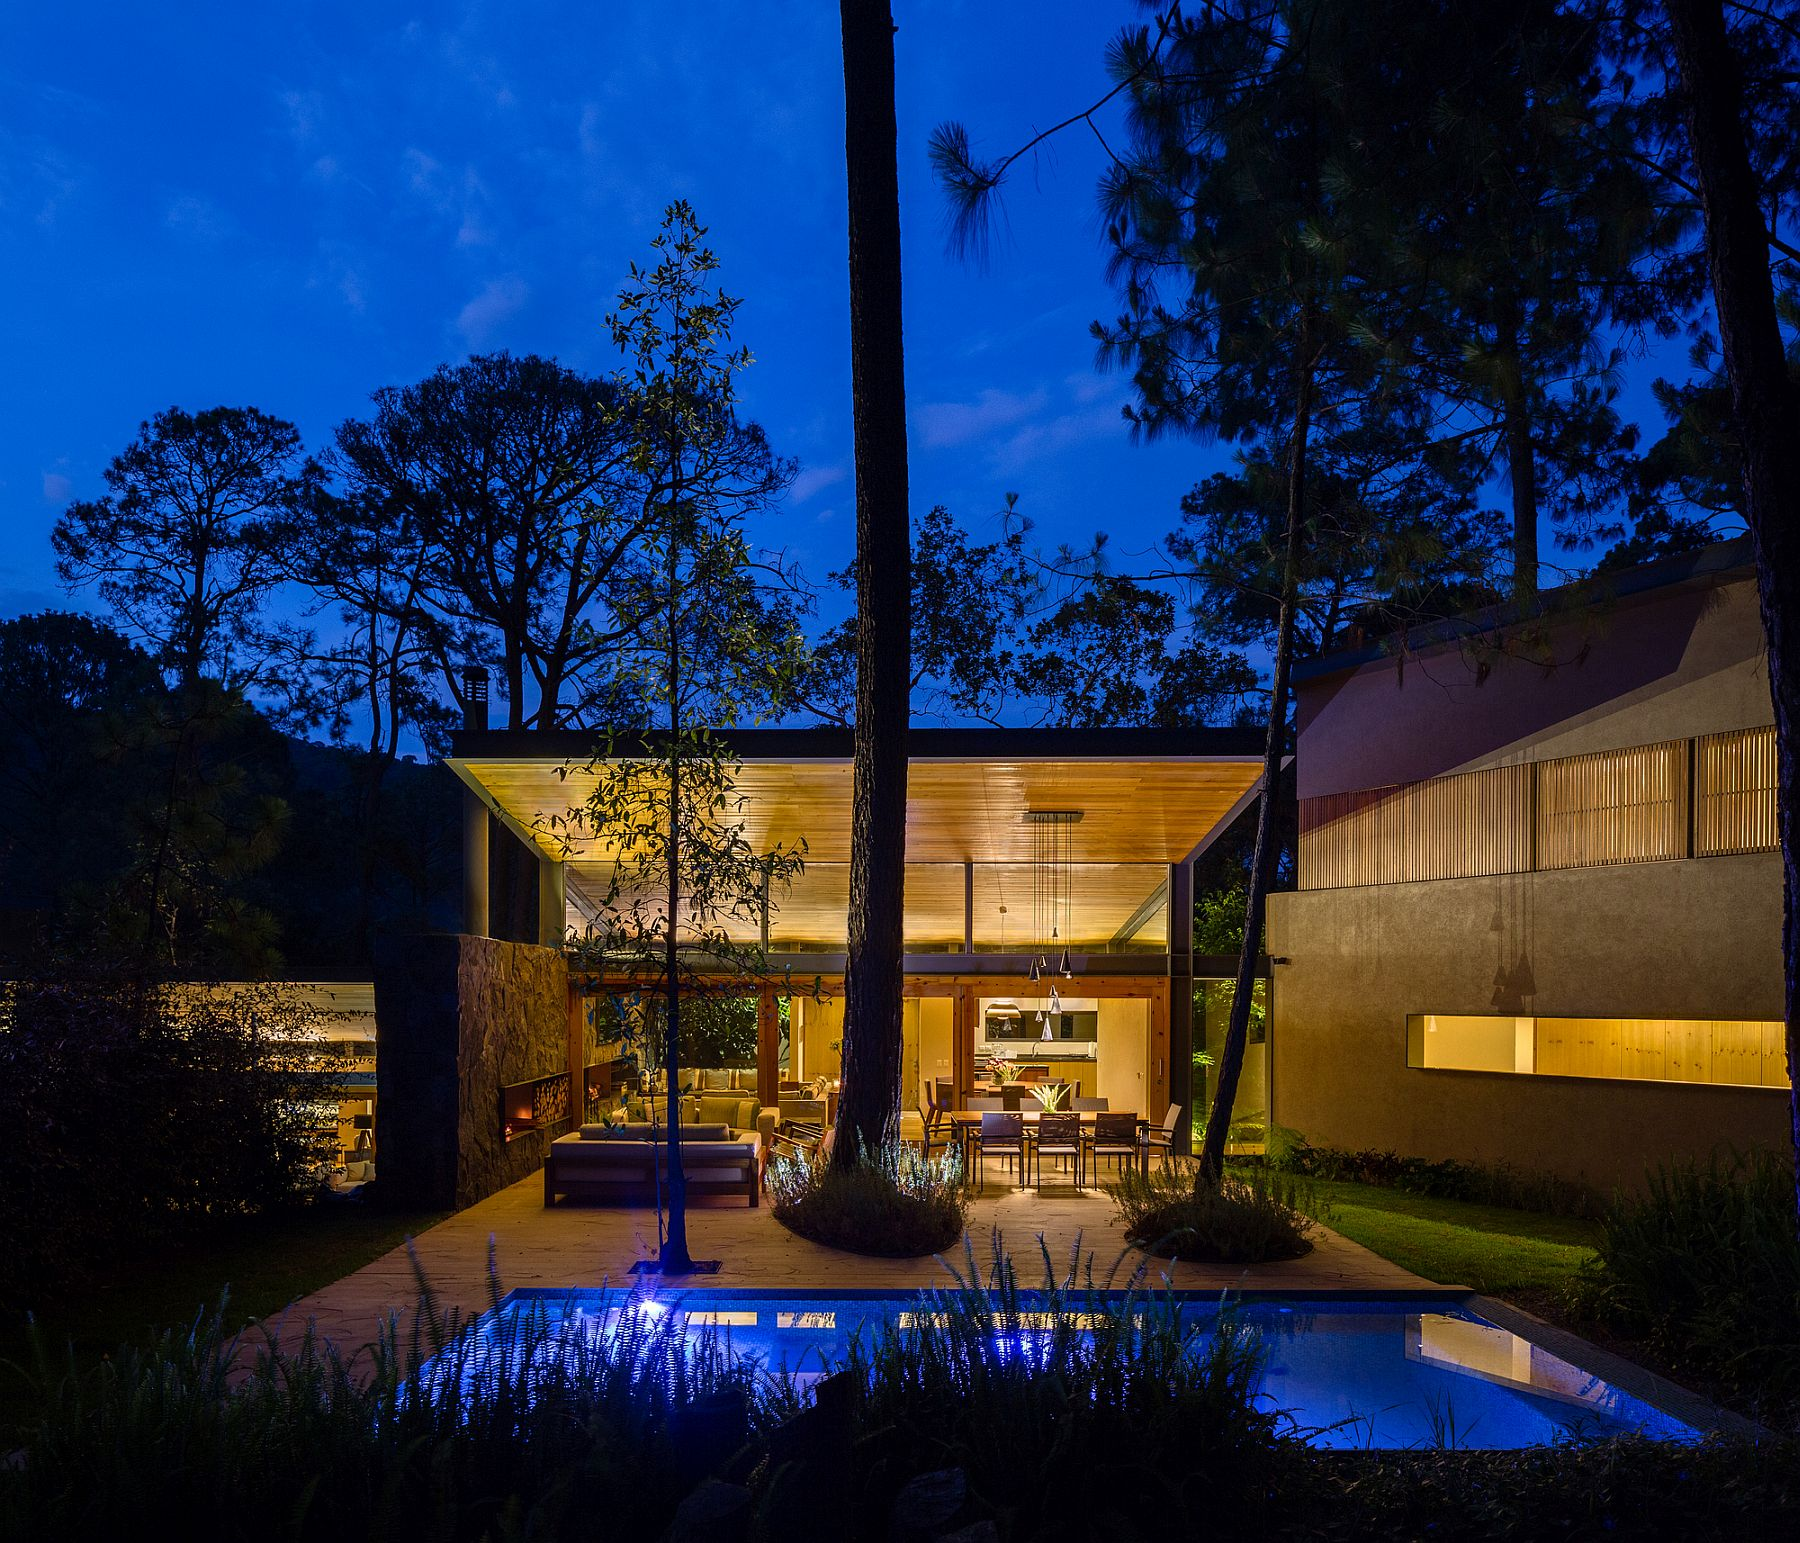 Lighting adds to the inviting warmth and opulenec of the Five Houses